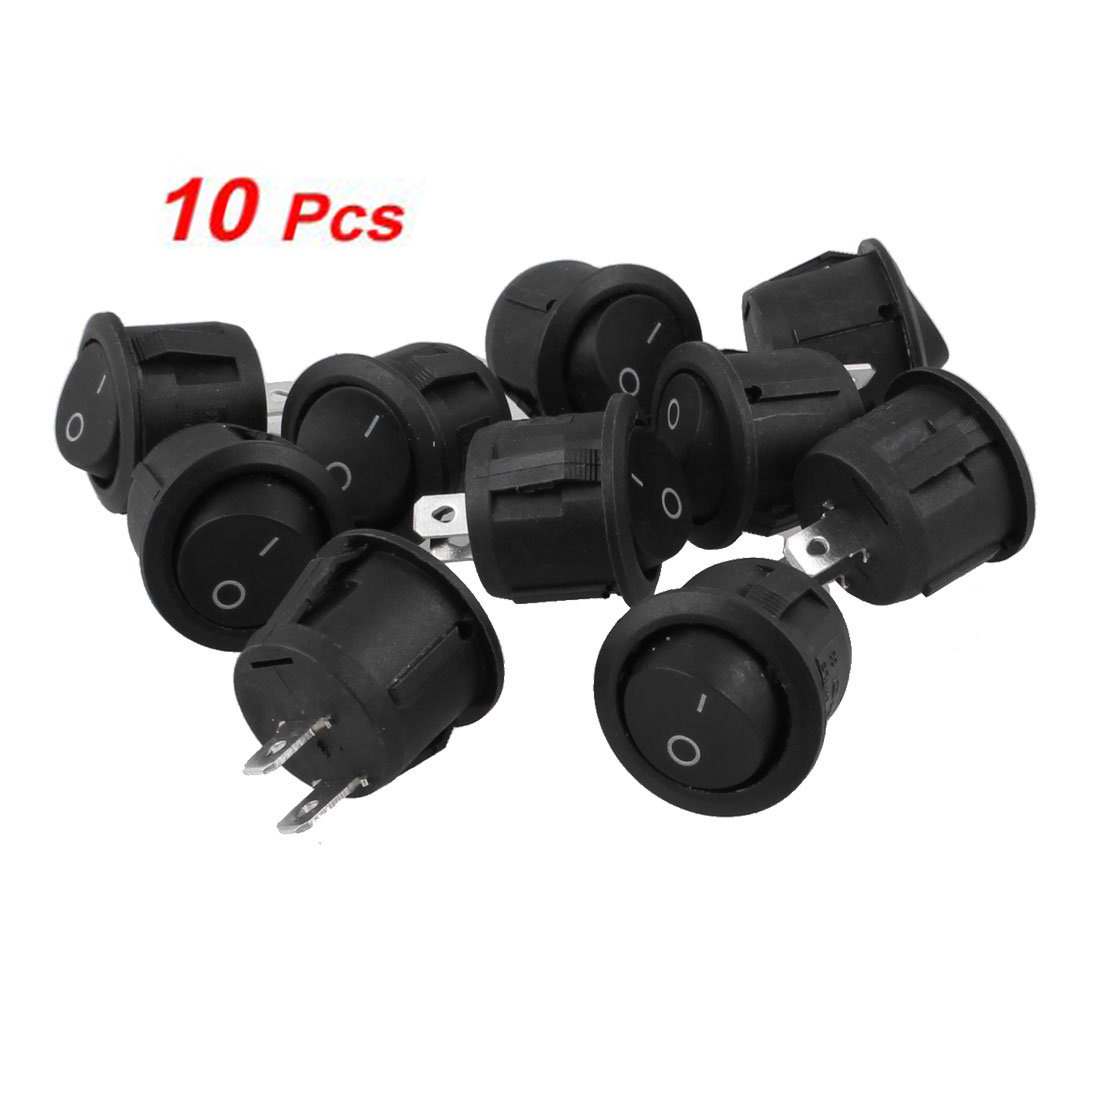 Promotion! 10Pcs AC 6A 10A 250V On Off Snap in SPST Round Boat Rocker Switch Black 20pcs lot mini boat rocker switch spst snap in ac 250v 3a 125v 6a 2 pin on off 10 15mm free shipping